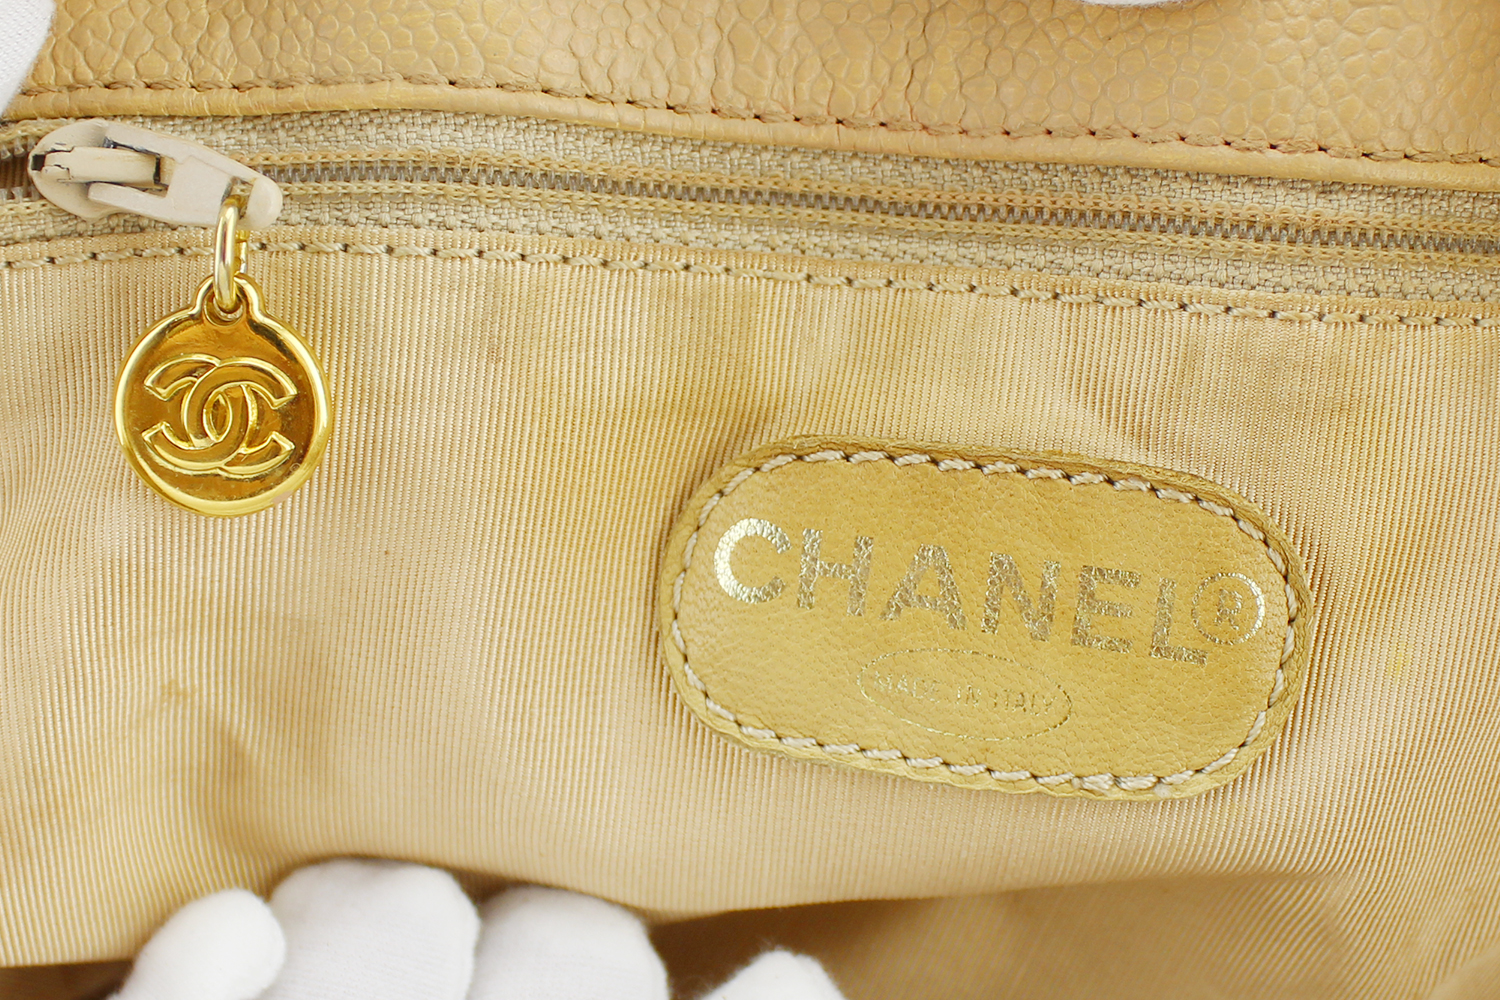 Sac à main Chanel Grand Shopping Authentique d'occasion en cuir grainé couleur beige